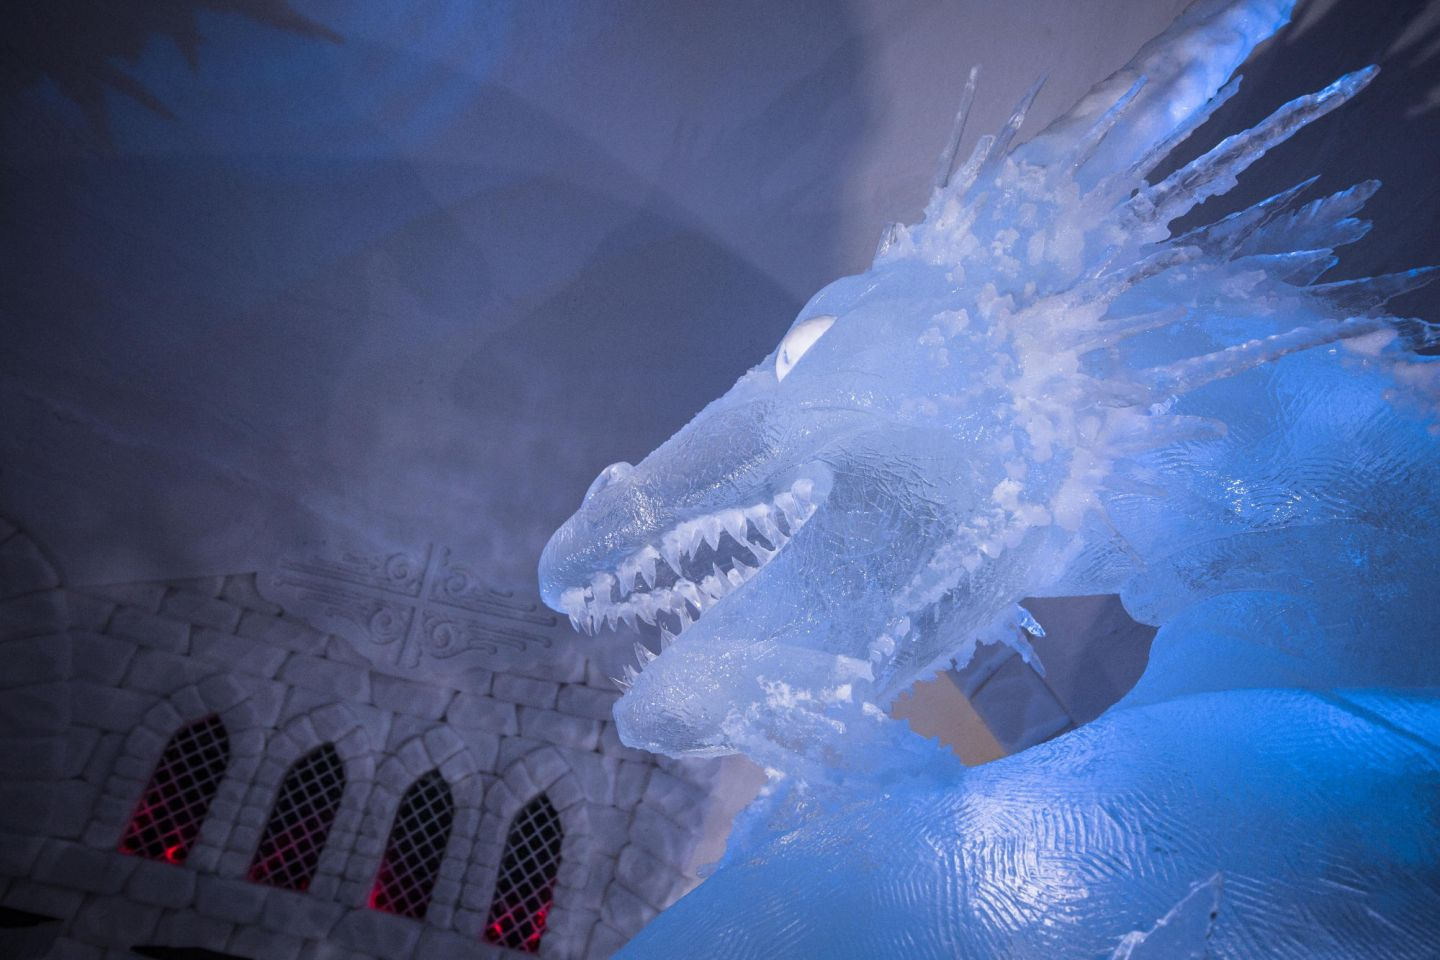 Game of Thrones snow village ice dragon